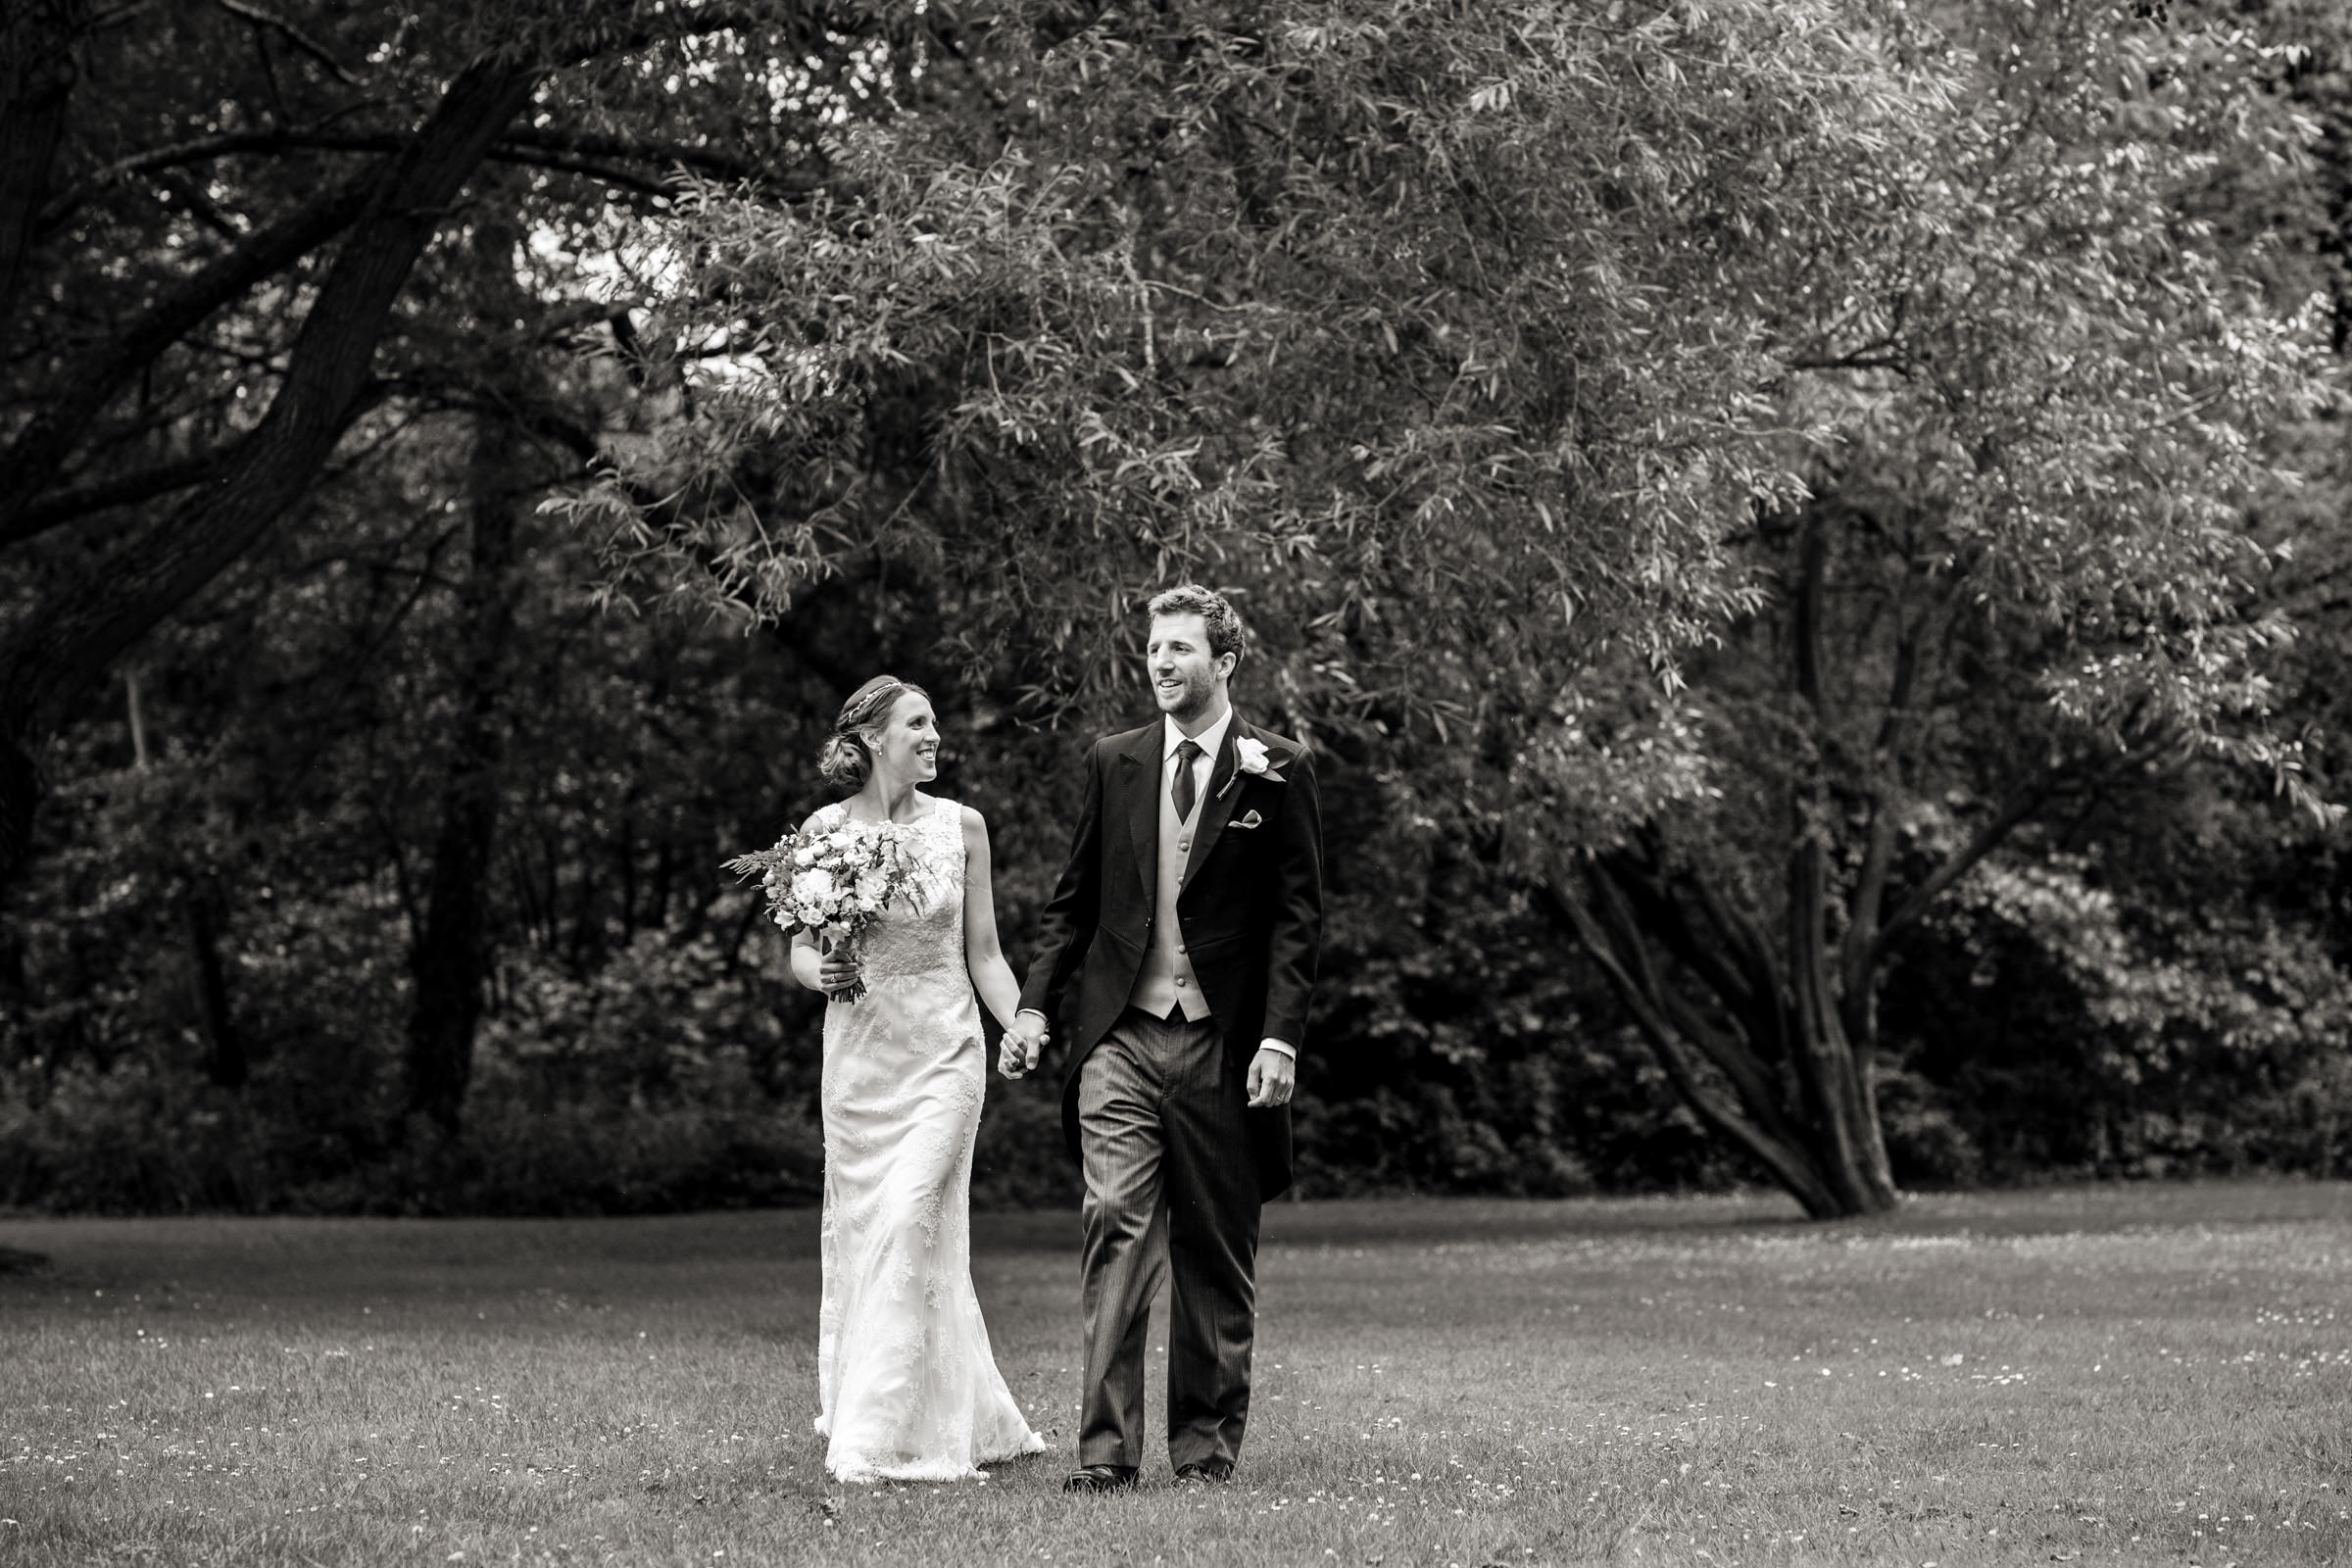 natural wedding photography at haileybury chapel in hertfordshire 025.jpg